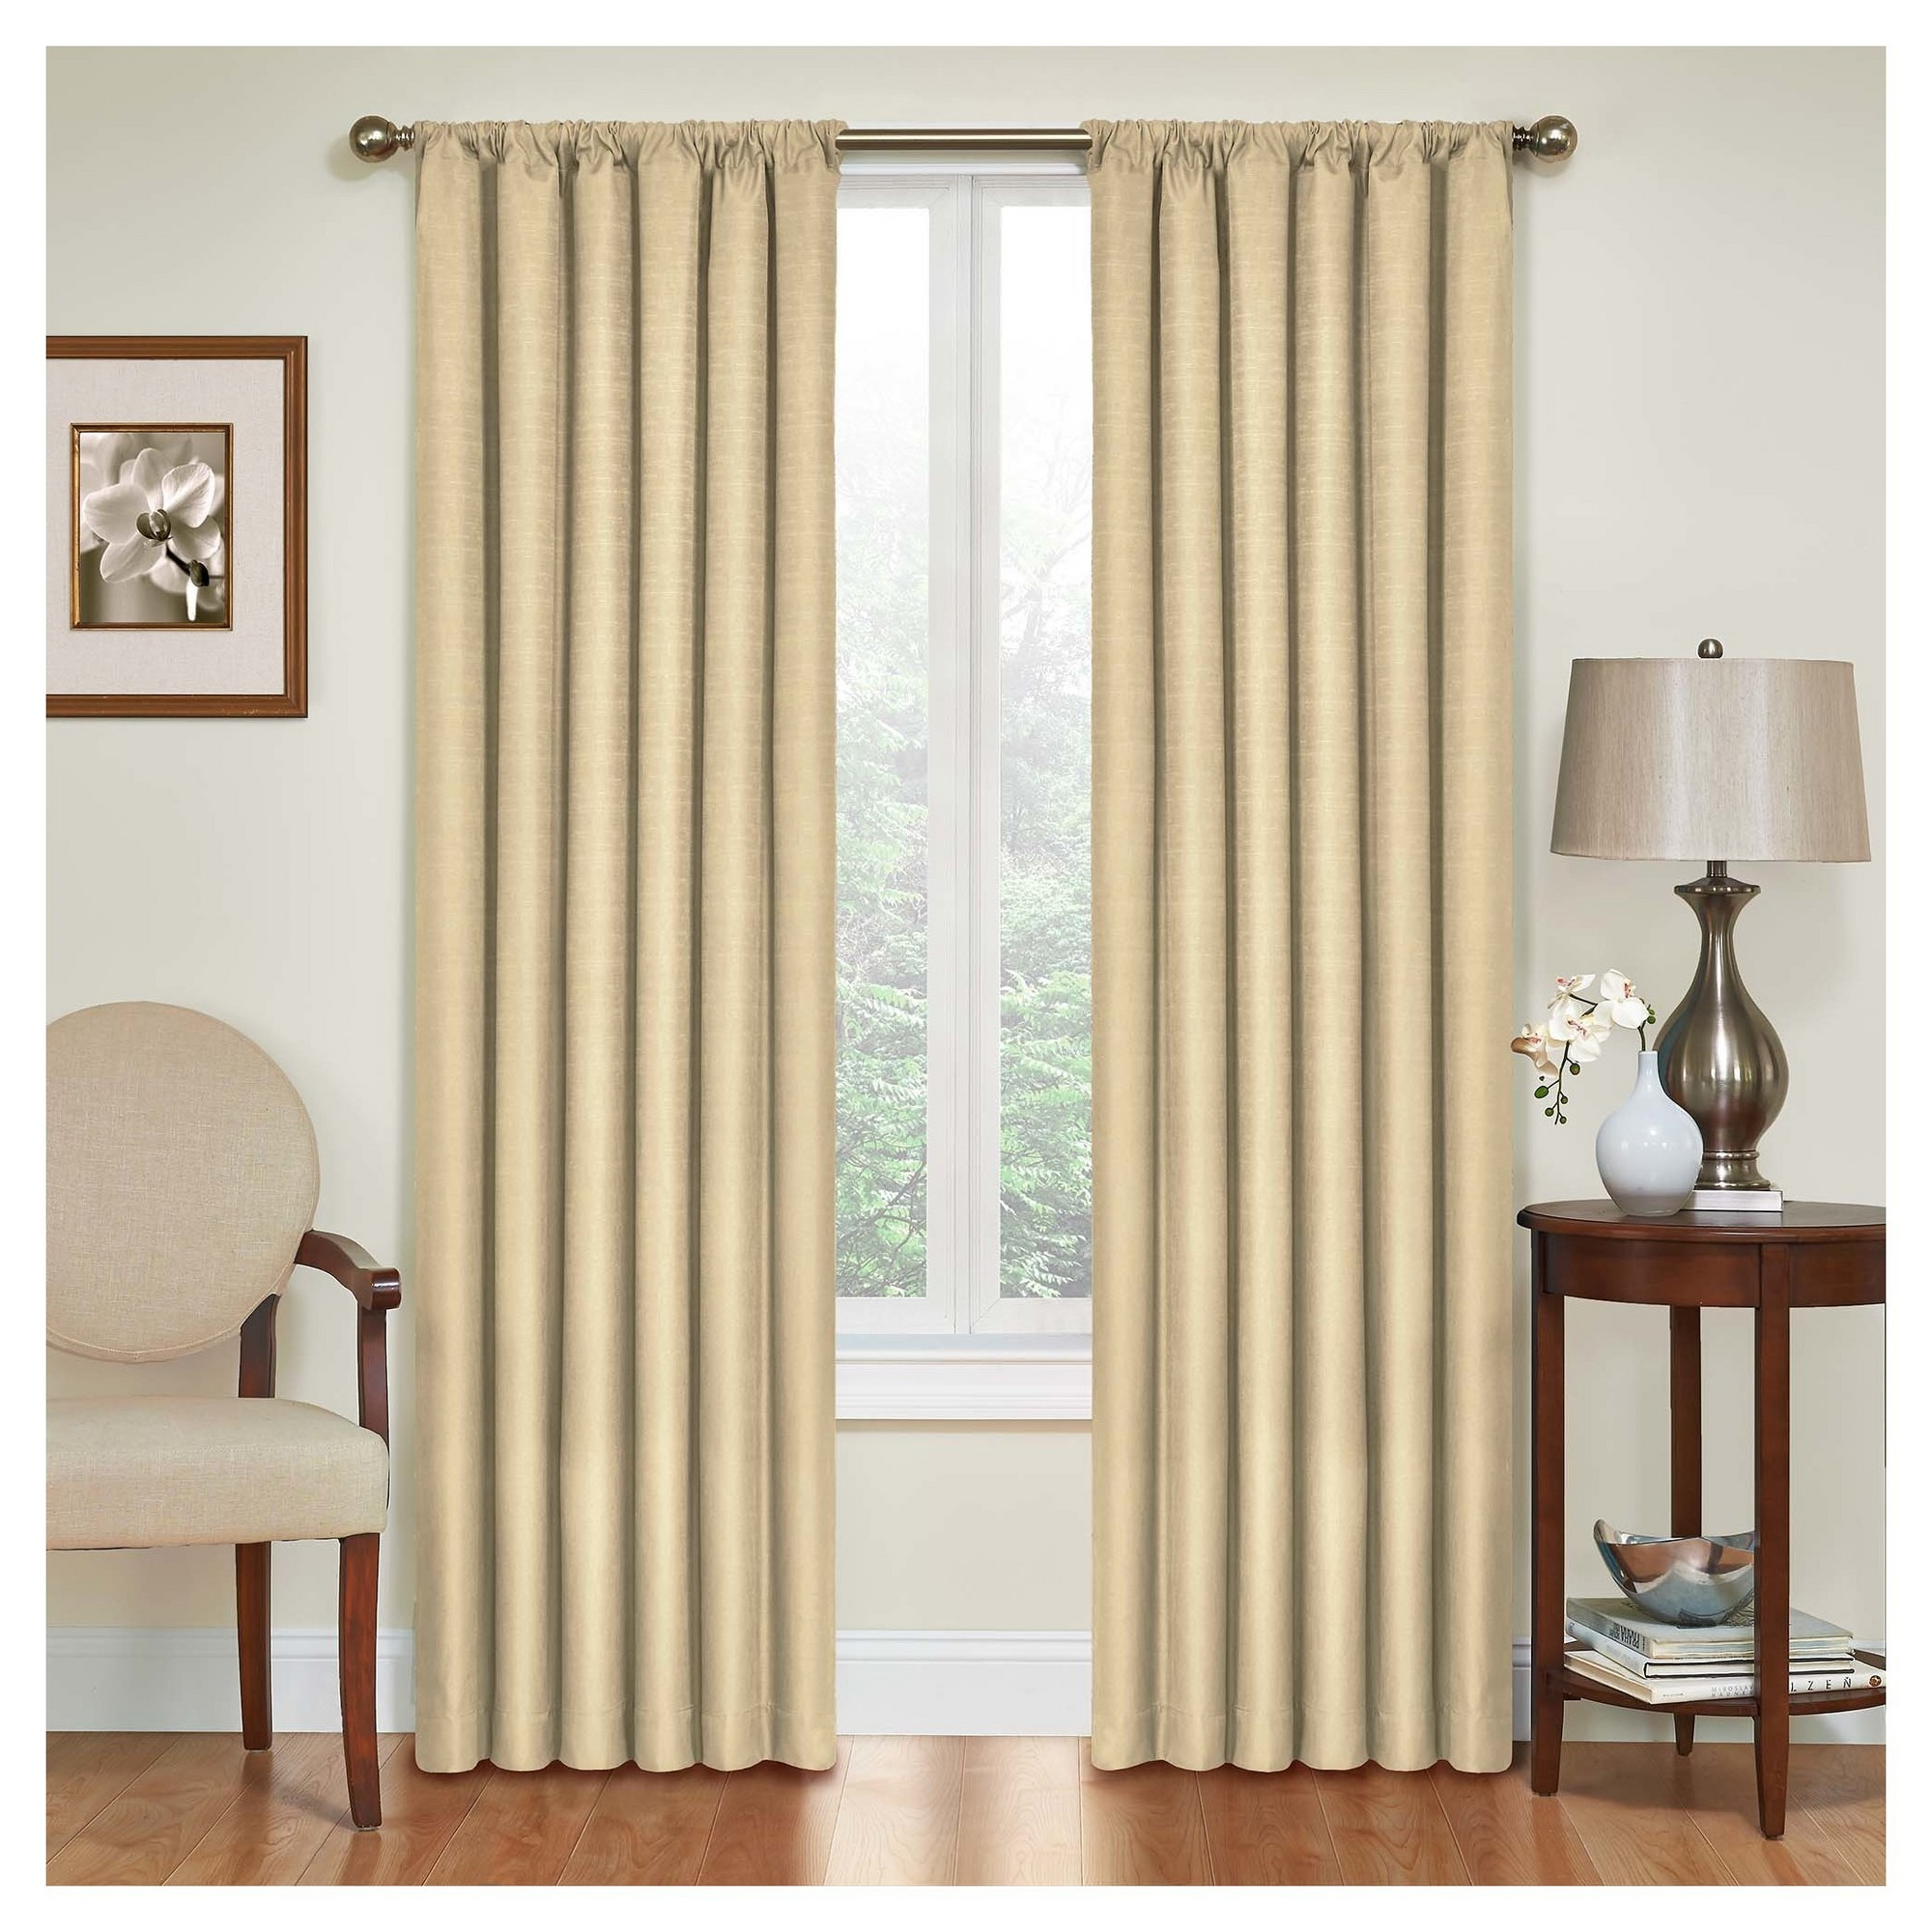 "Kendall Thermaback Blackout Curtain Panel Tan (42""x95 Regarding Thermaback Blackout Window Curtains (Gallery 9 of 30)"